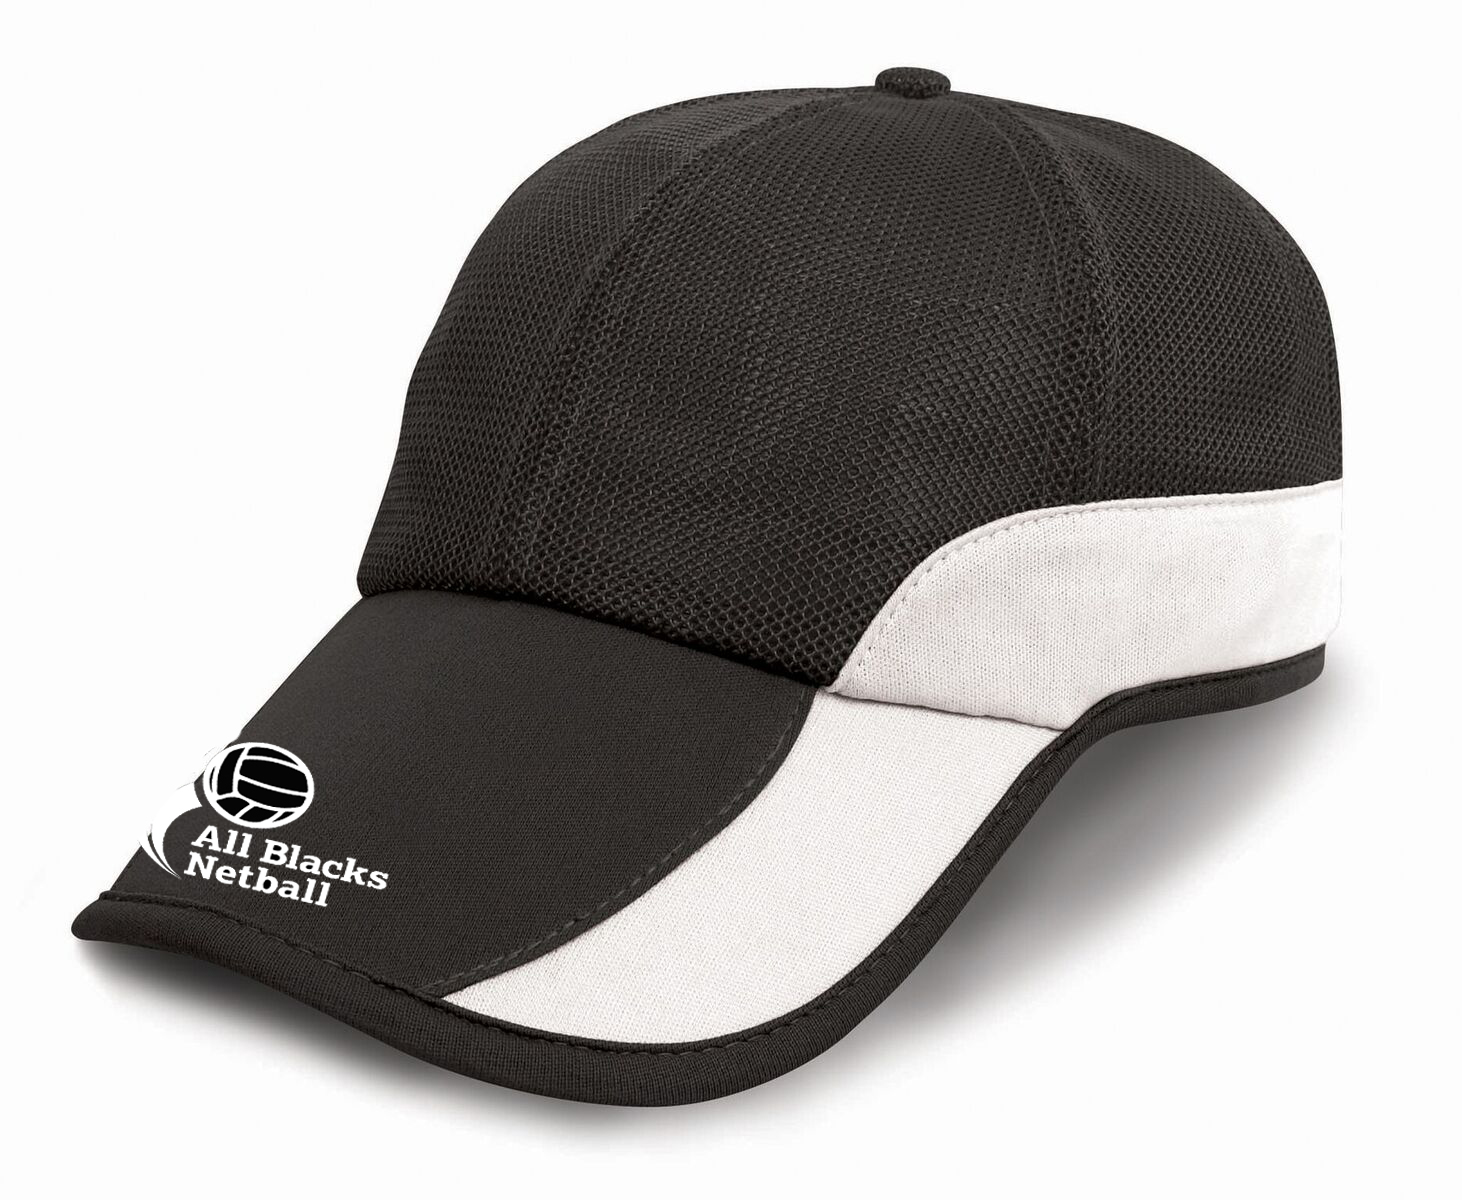 ALL BLACKS NETBALL CAP